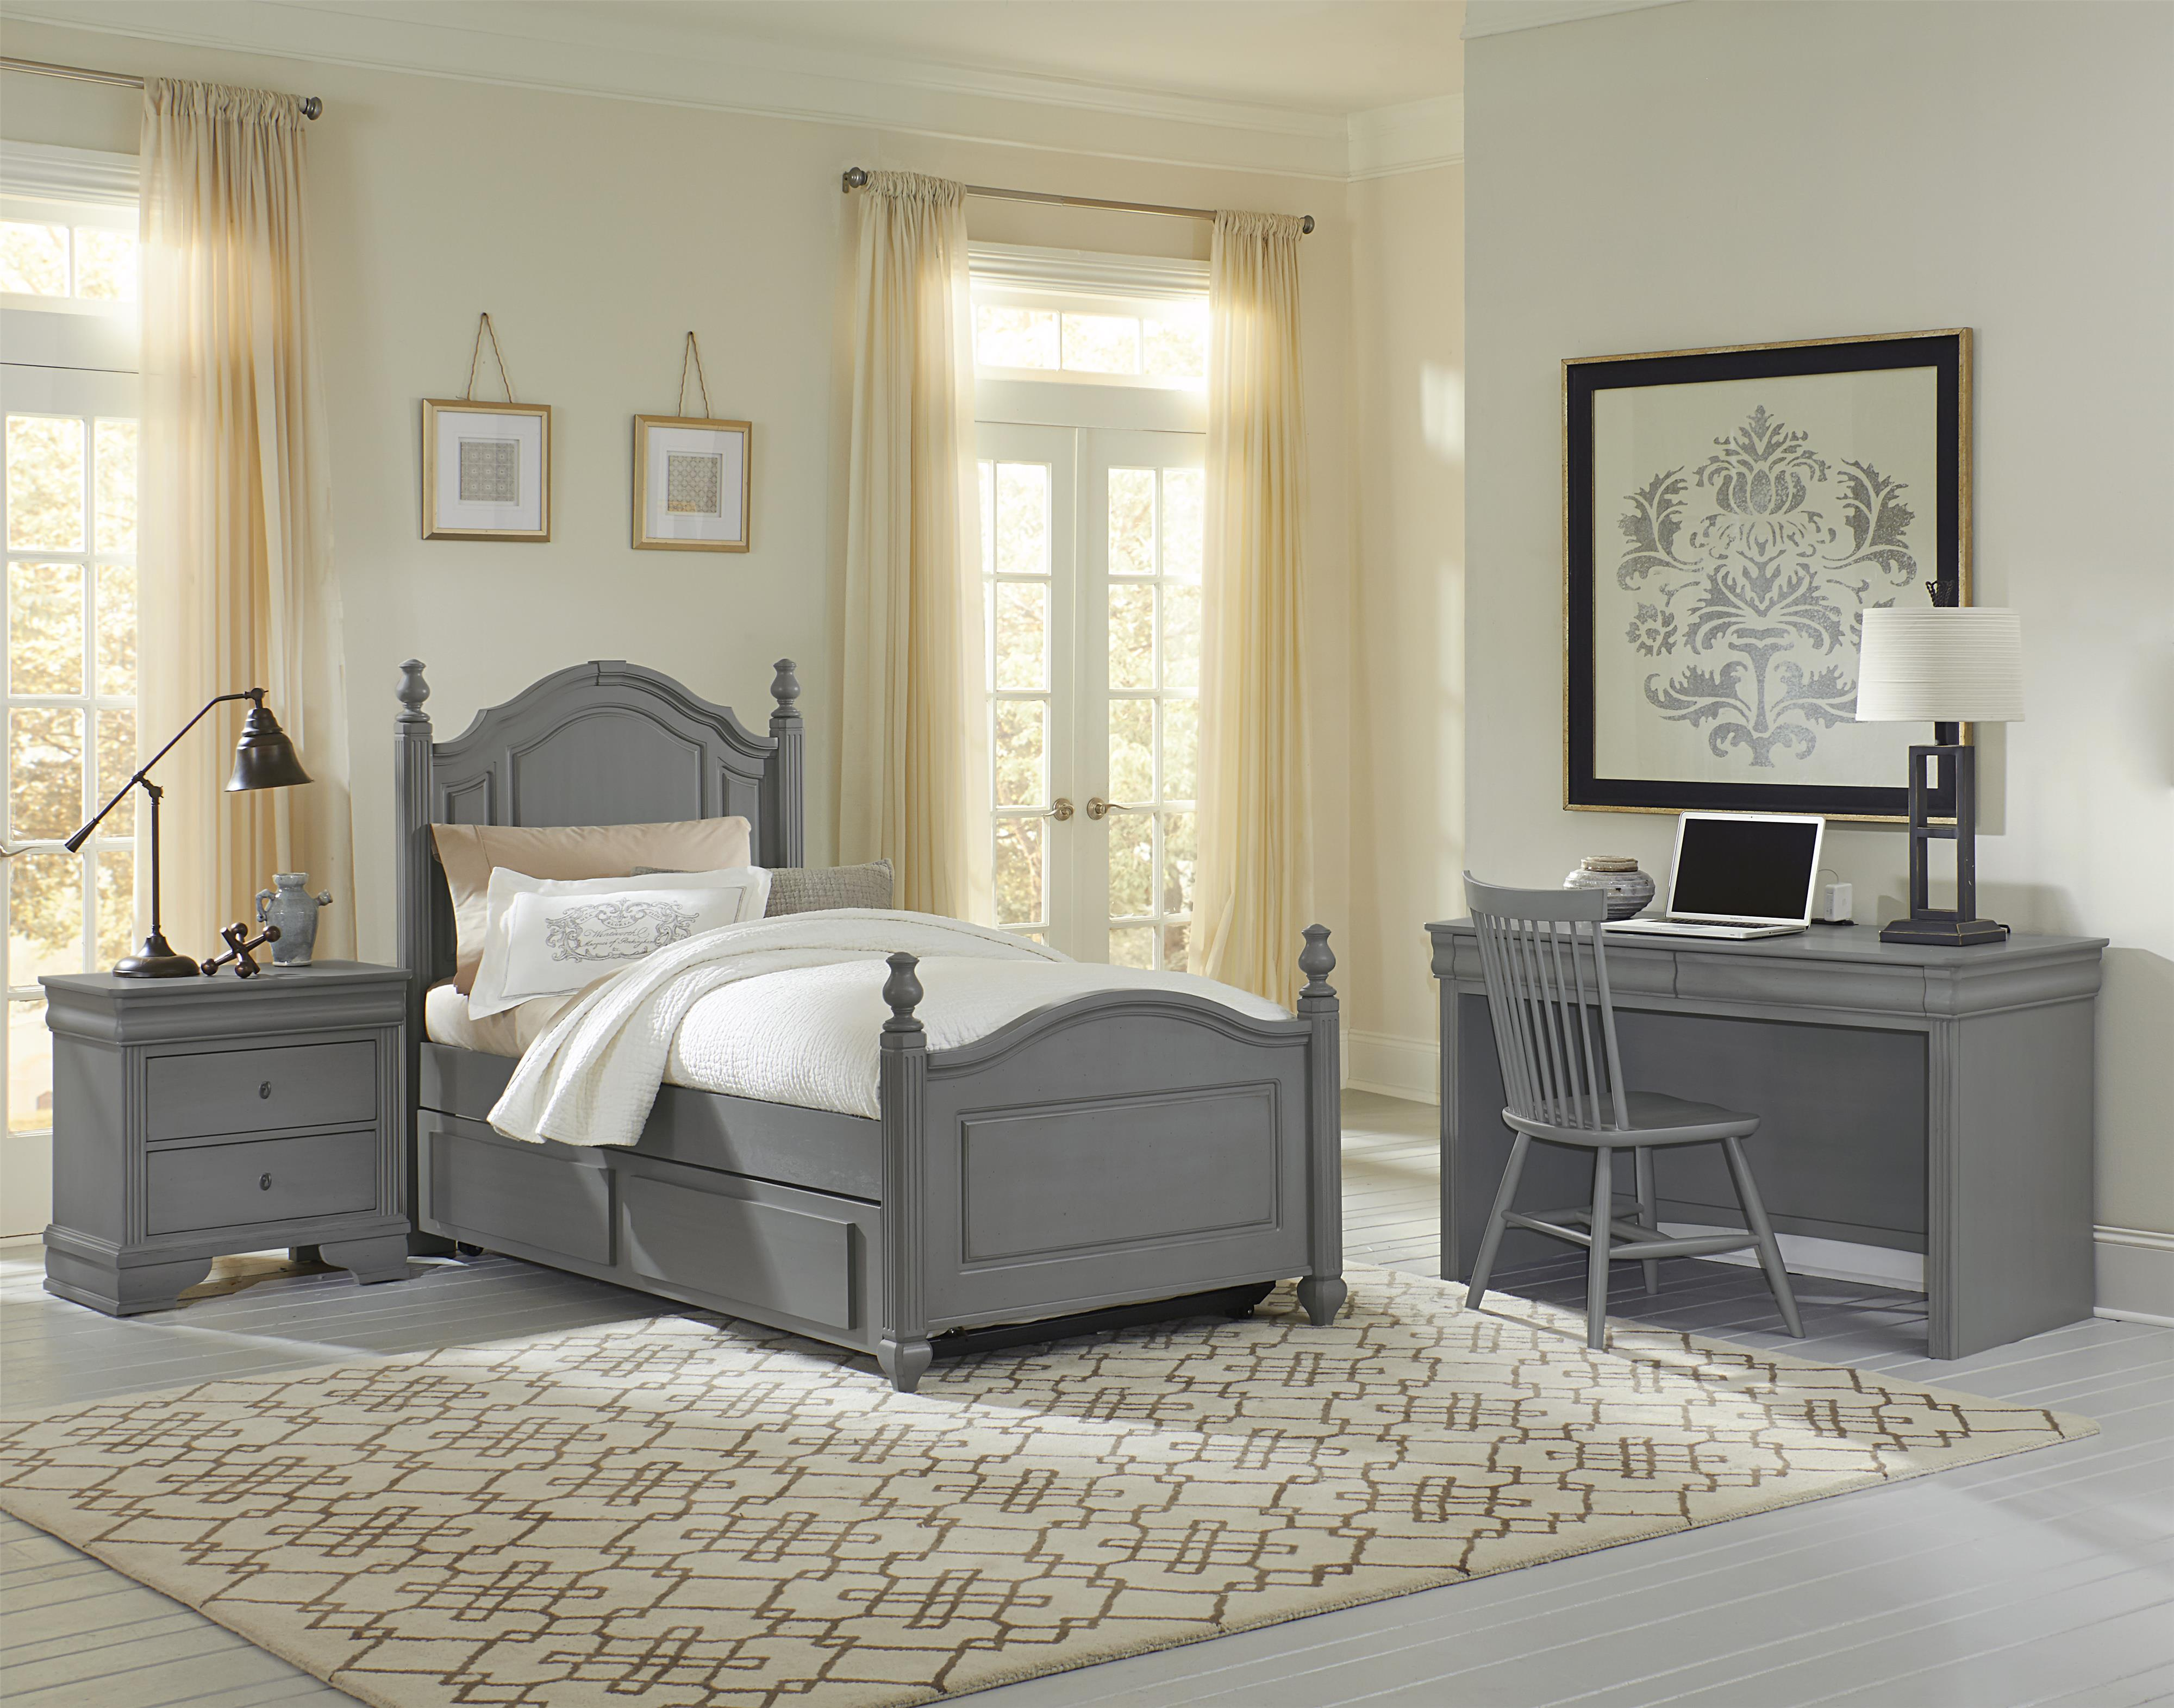 Vaughan Bassett French Market Twin Bedroom Group - Item Number: 381 T Bedroom Group 2